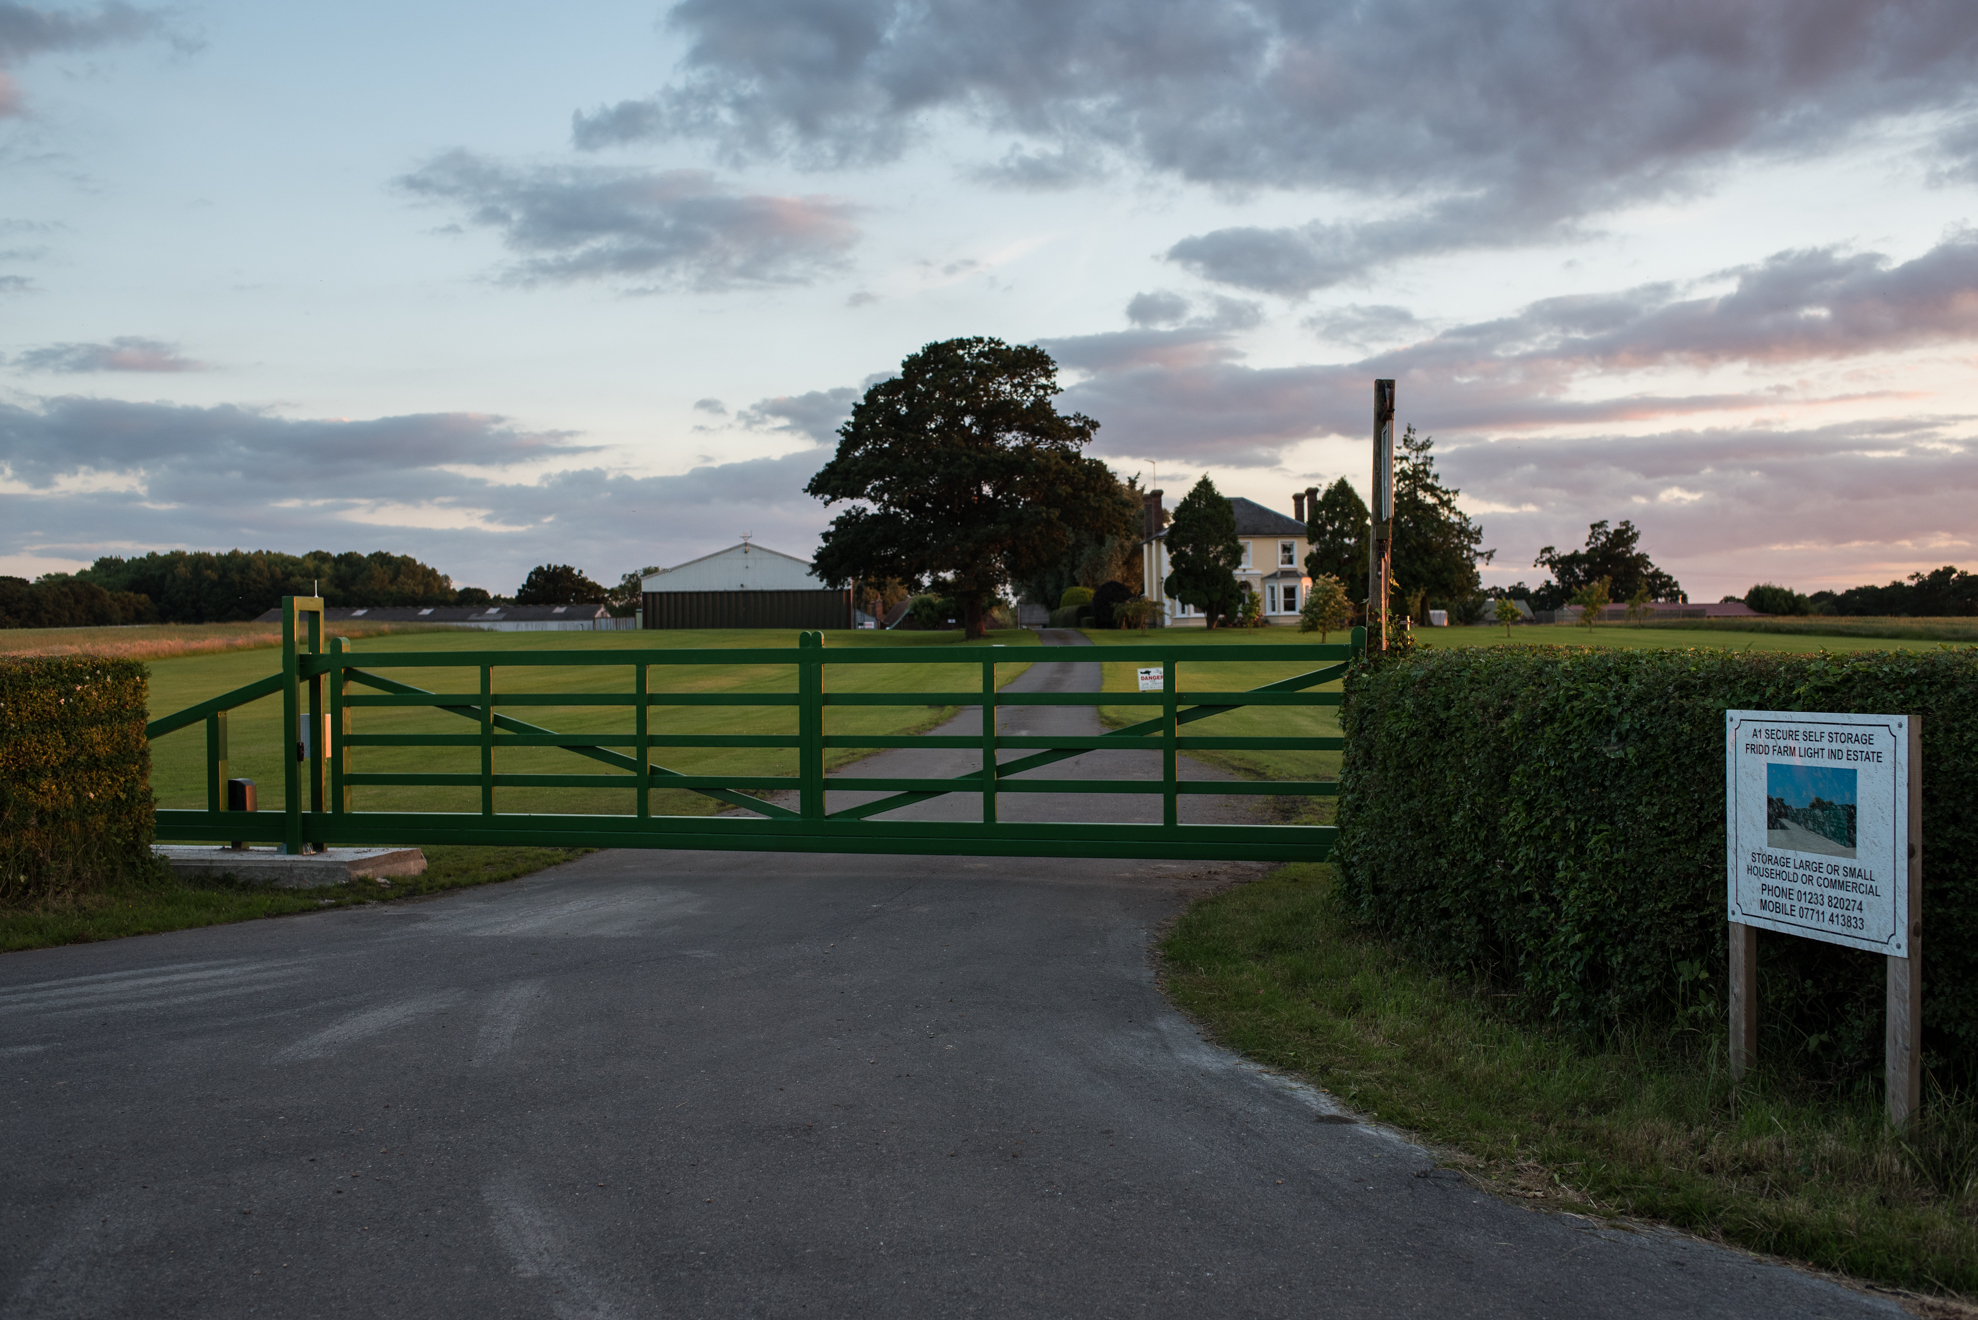 A1 Secure storage security gate